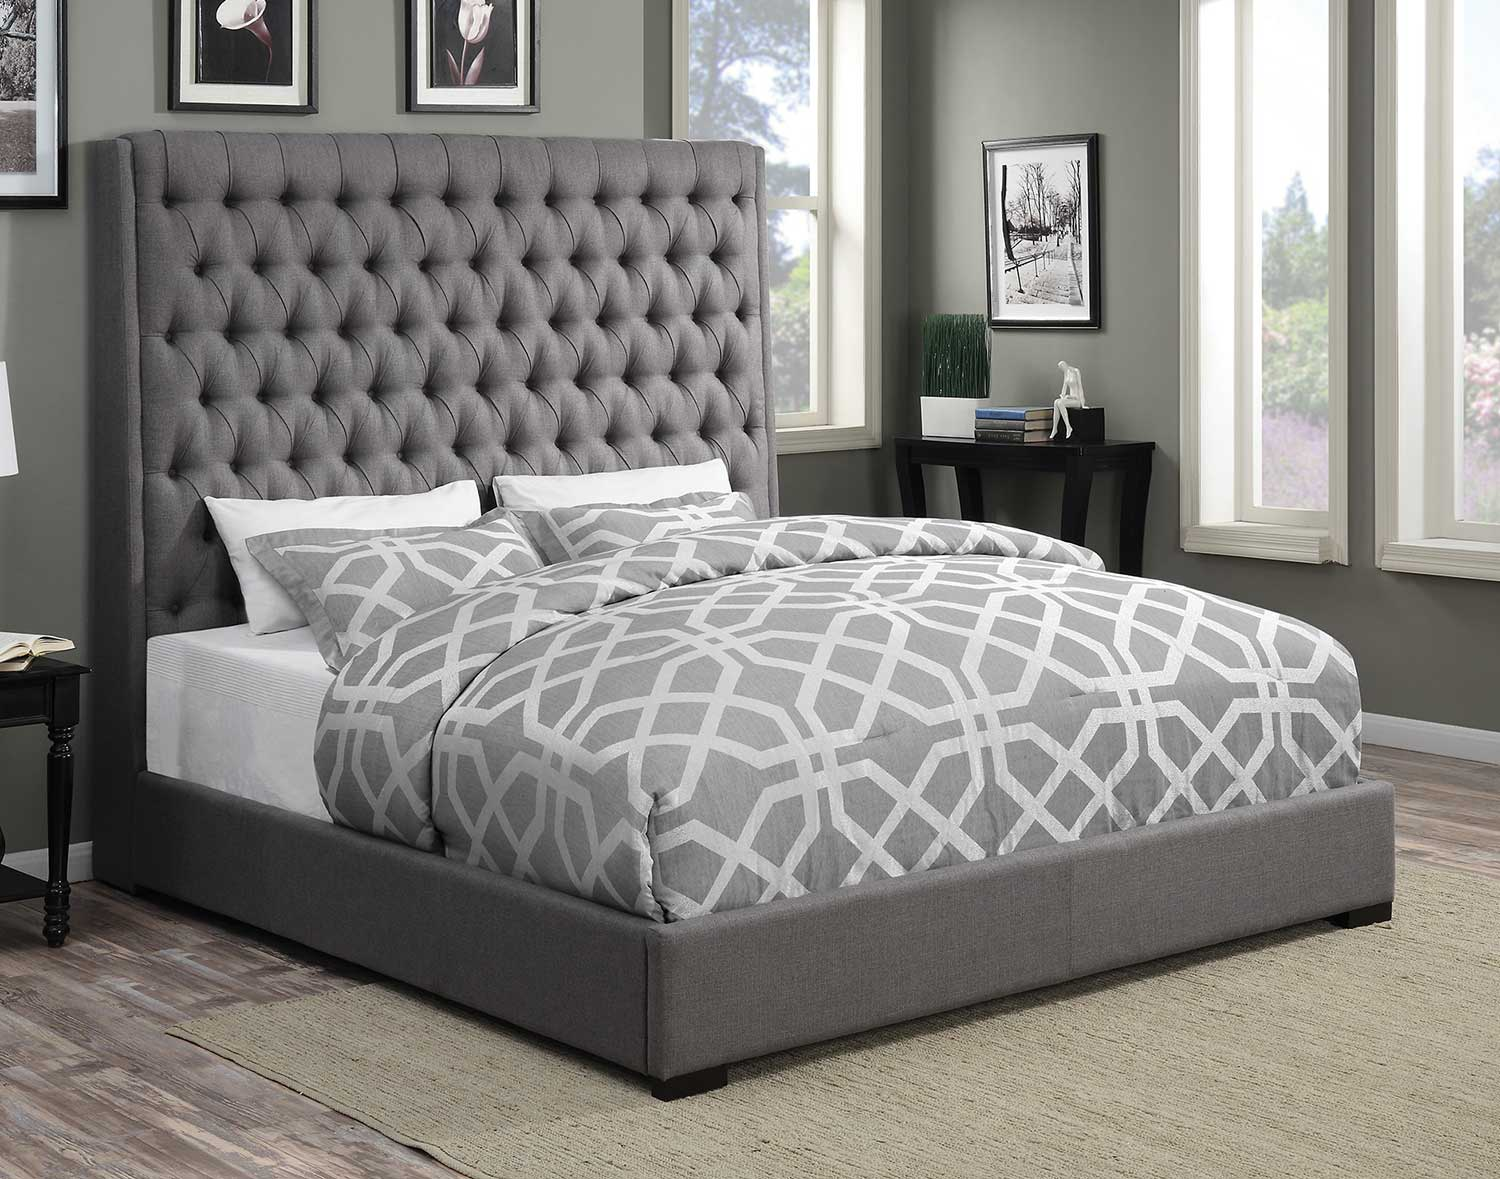 Coaster Camille Bed - Grey Fabric